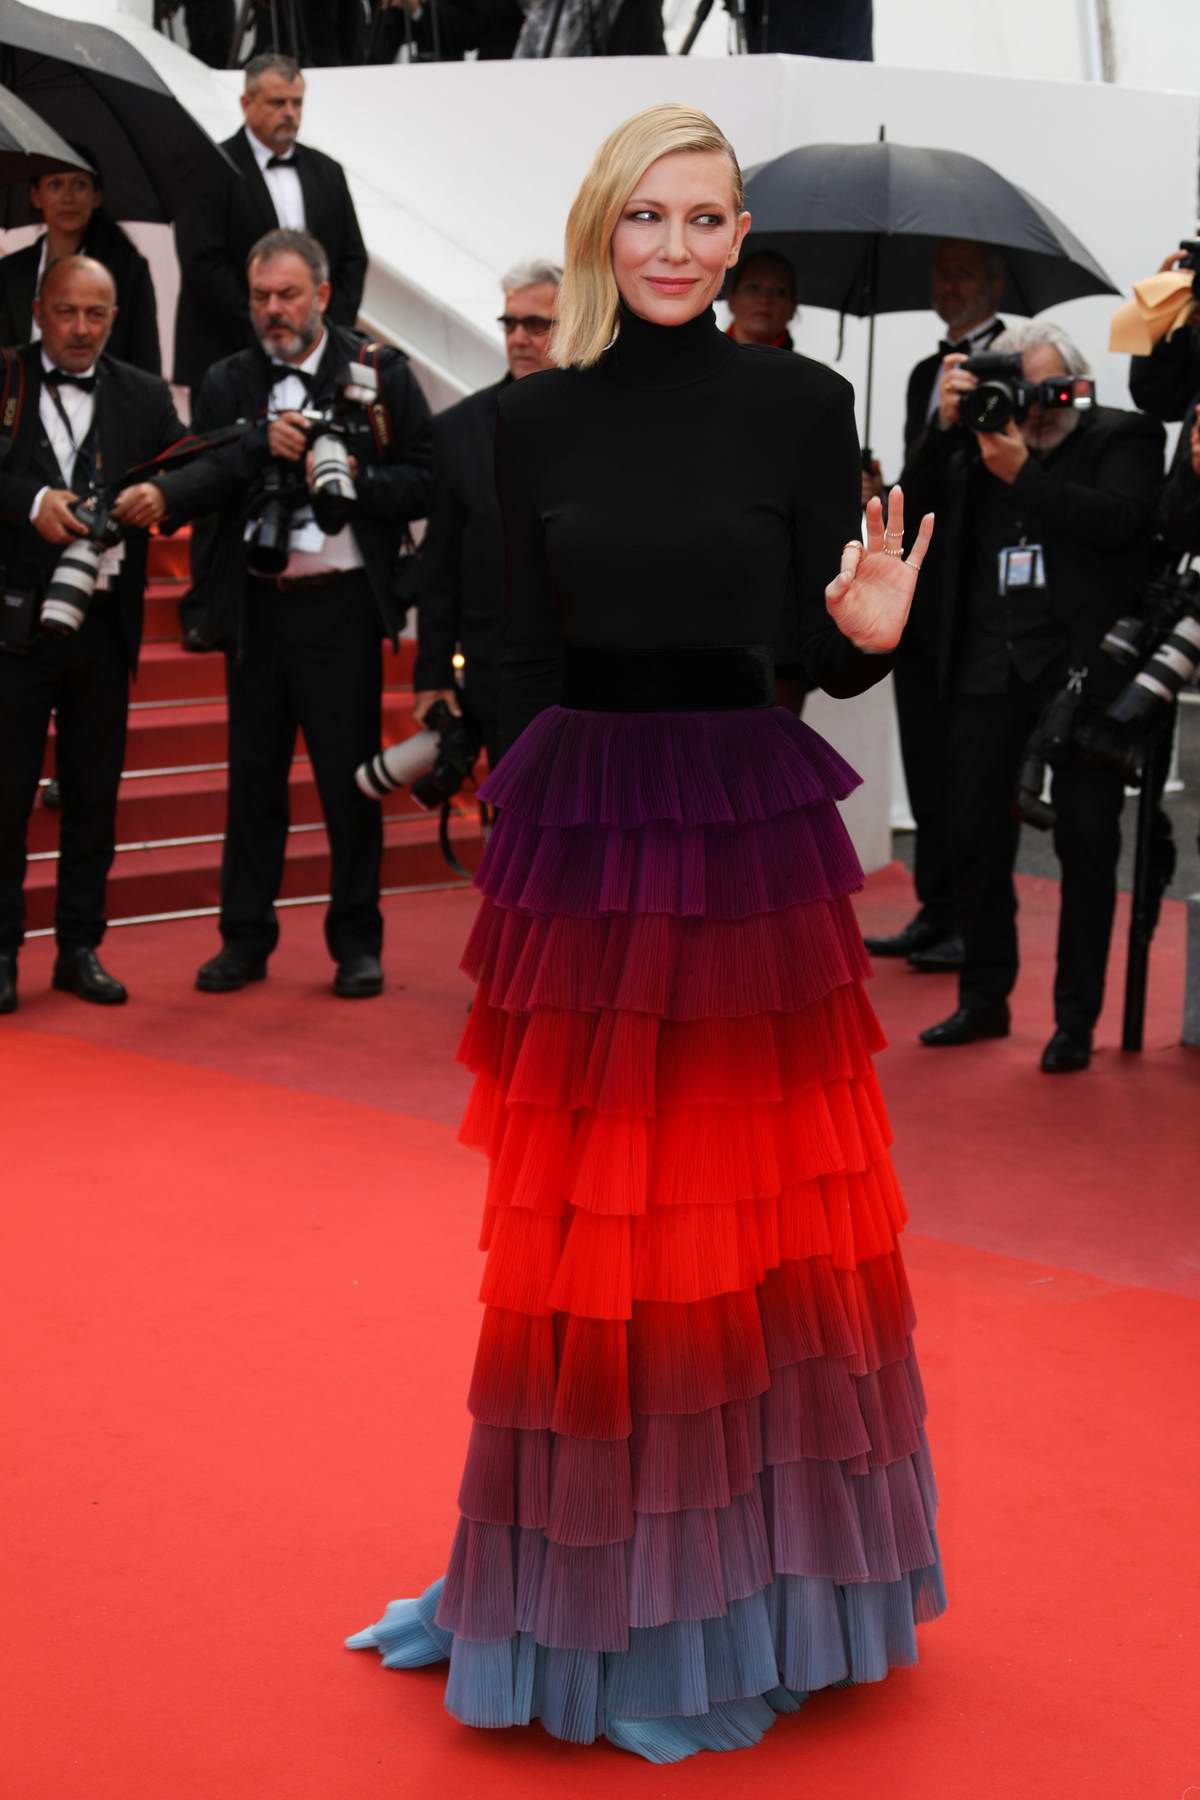 Cate Blanchett attends the 'BlacKkKlansman' premiere during 71st Cannes Film Festival in Cannes, France